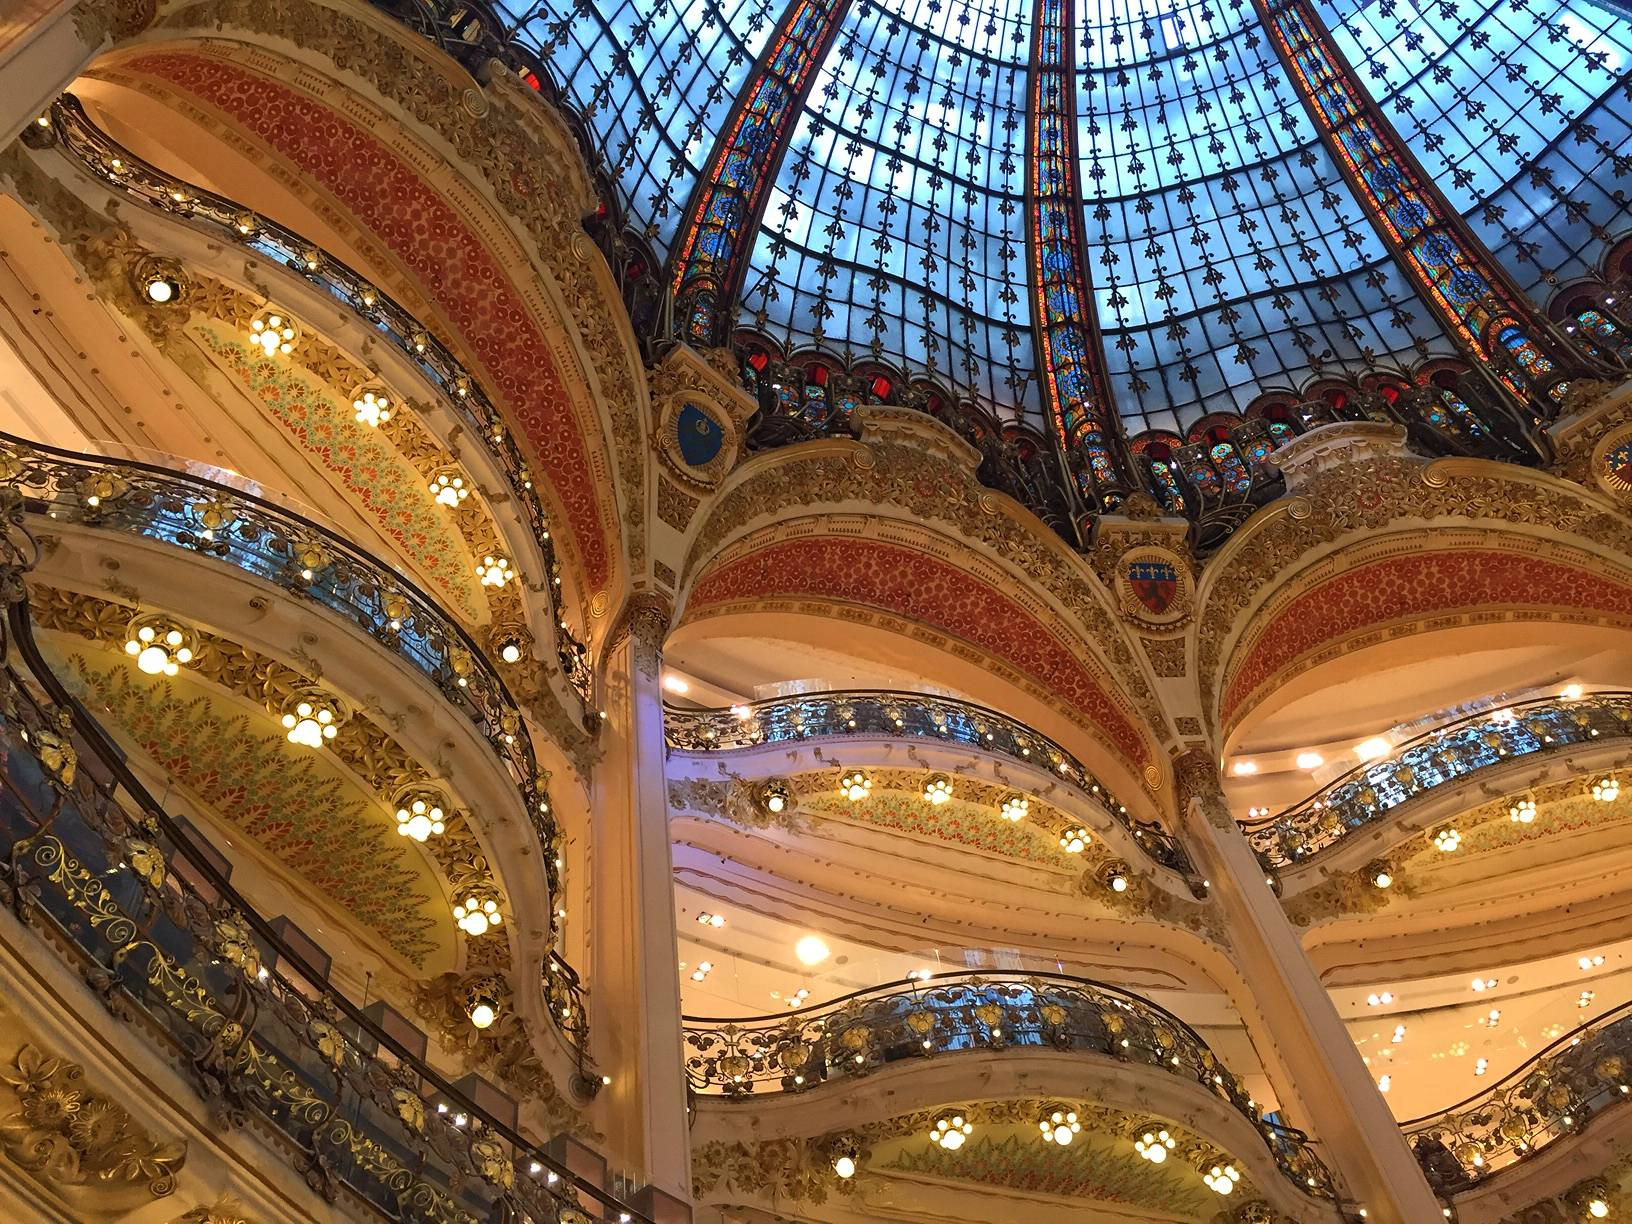 Architectural Photgraphy...Travel Photography...Galeries Lafayette